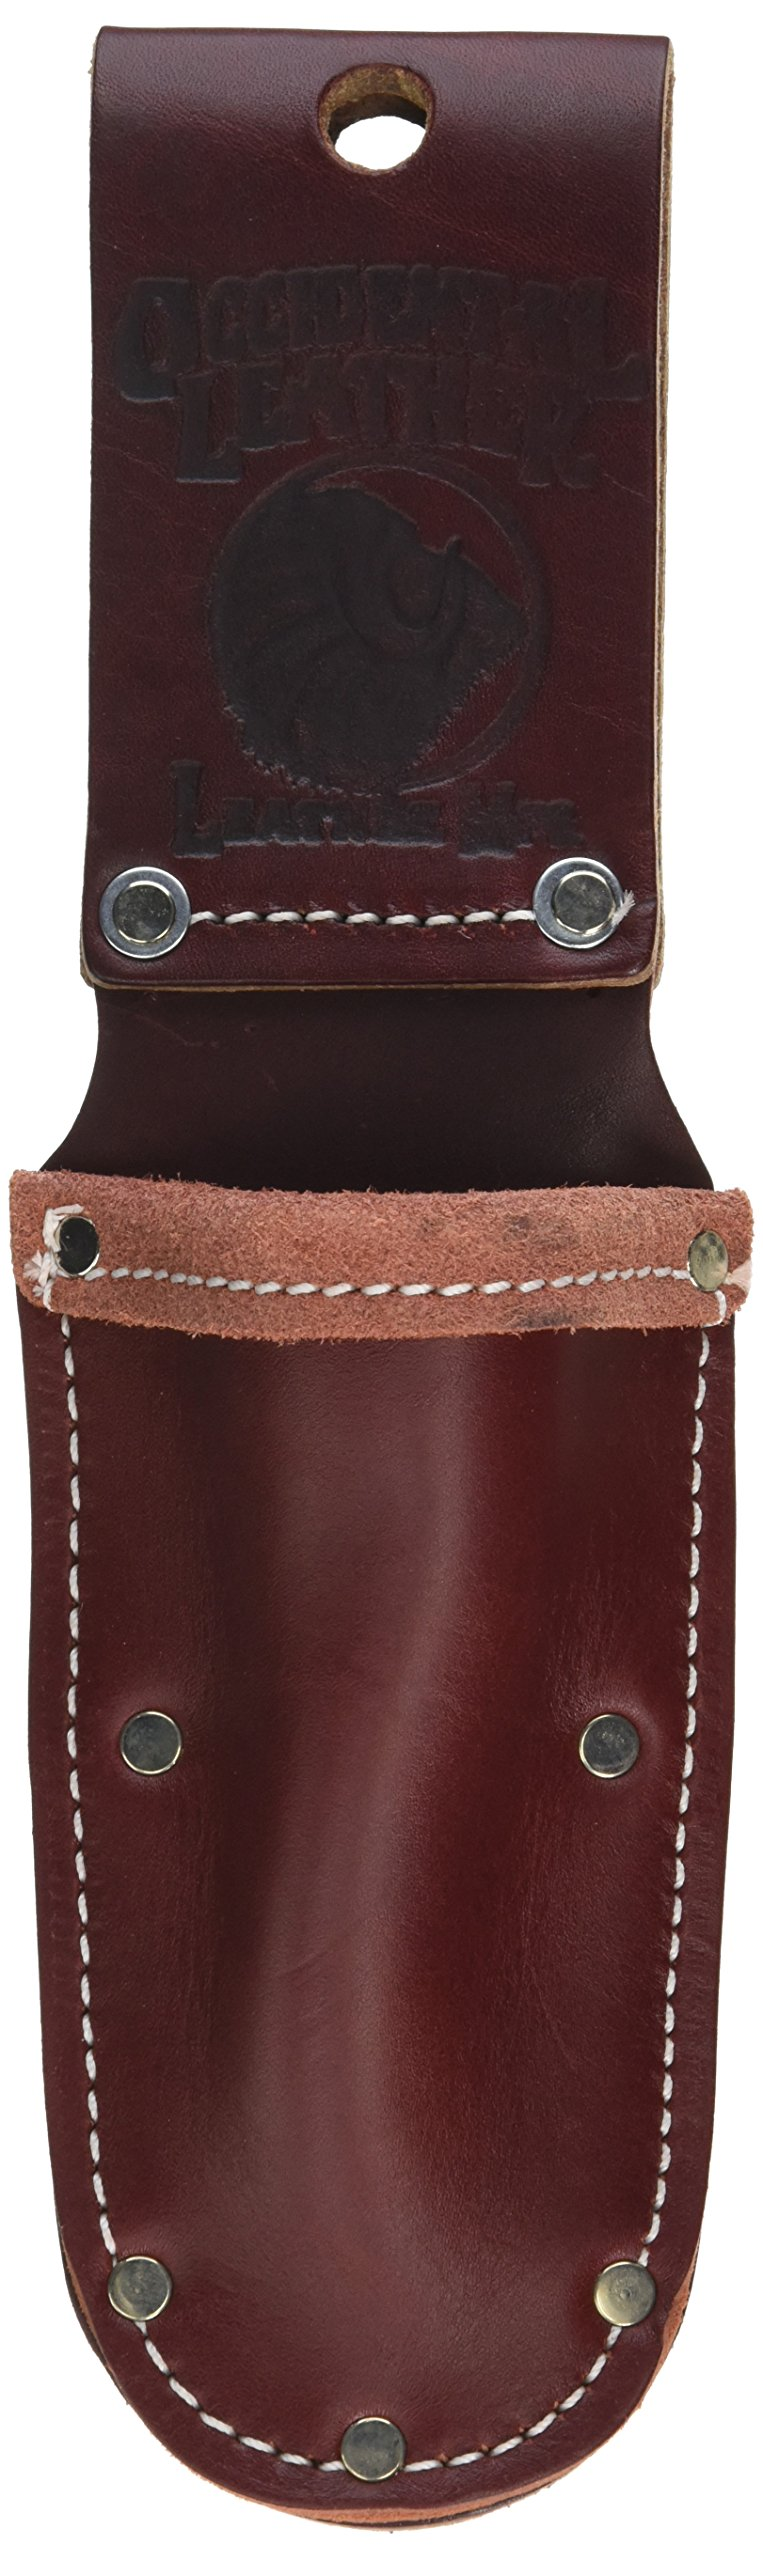 Occidental Leather 5013-3 Holster with 3-Inch Belt Loop